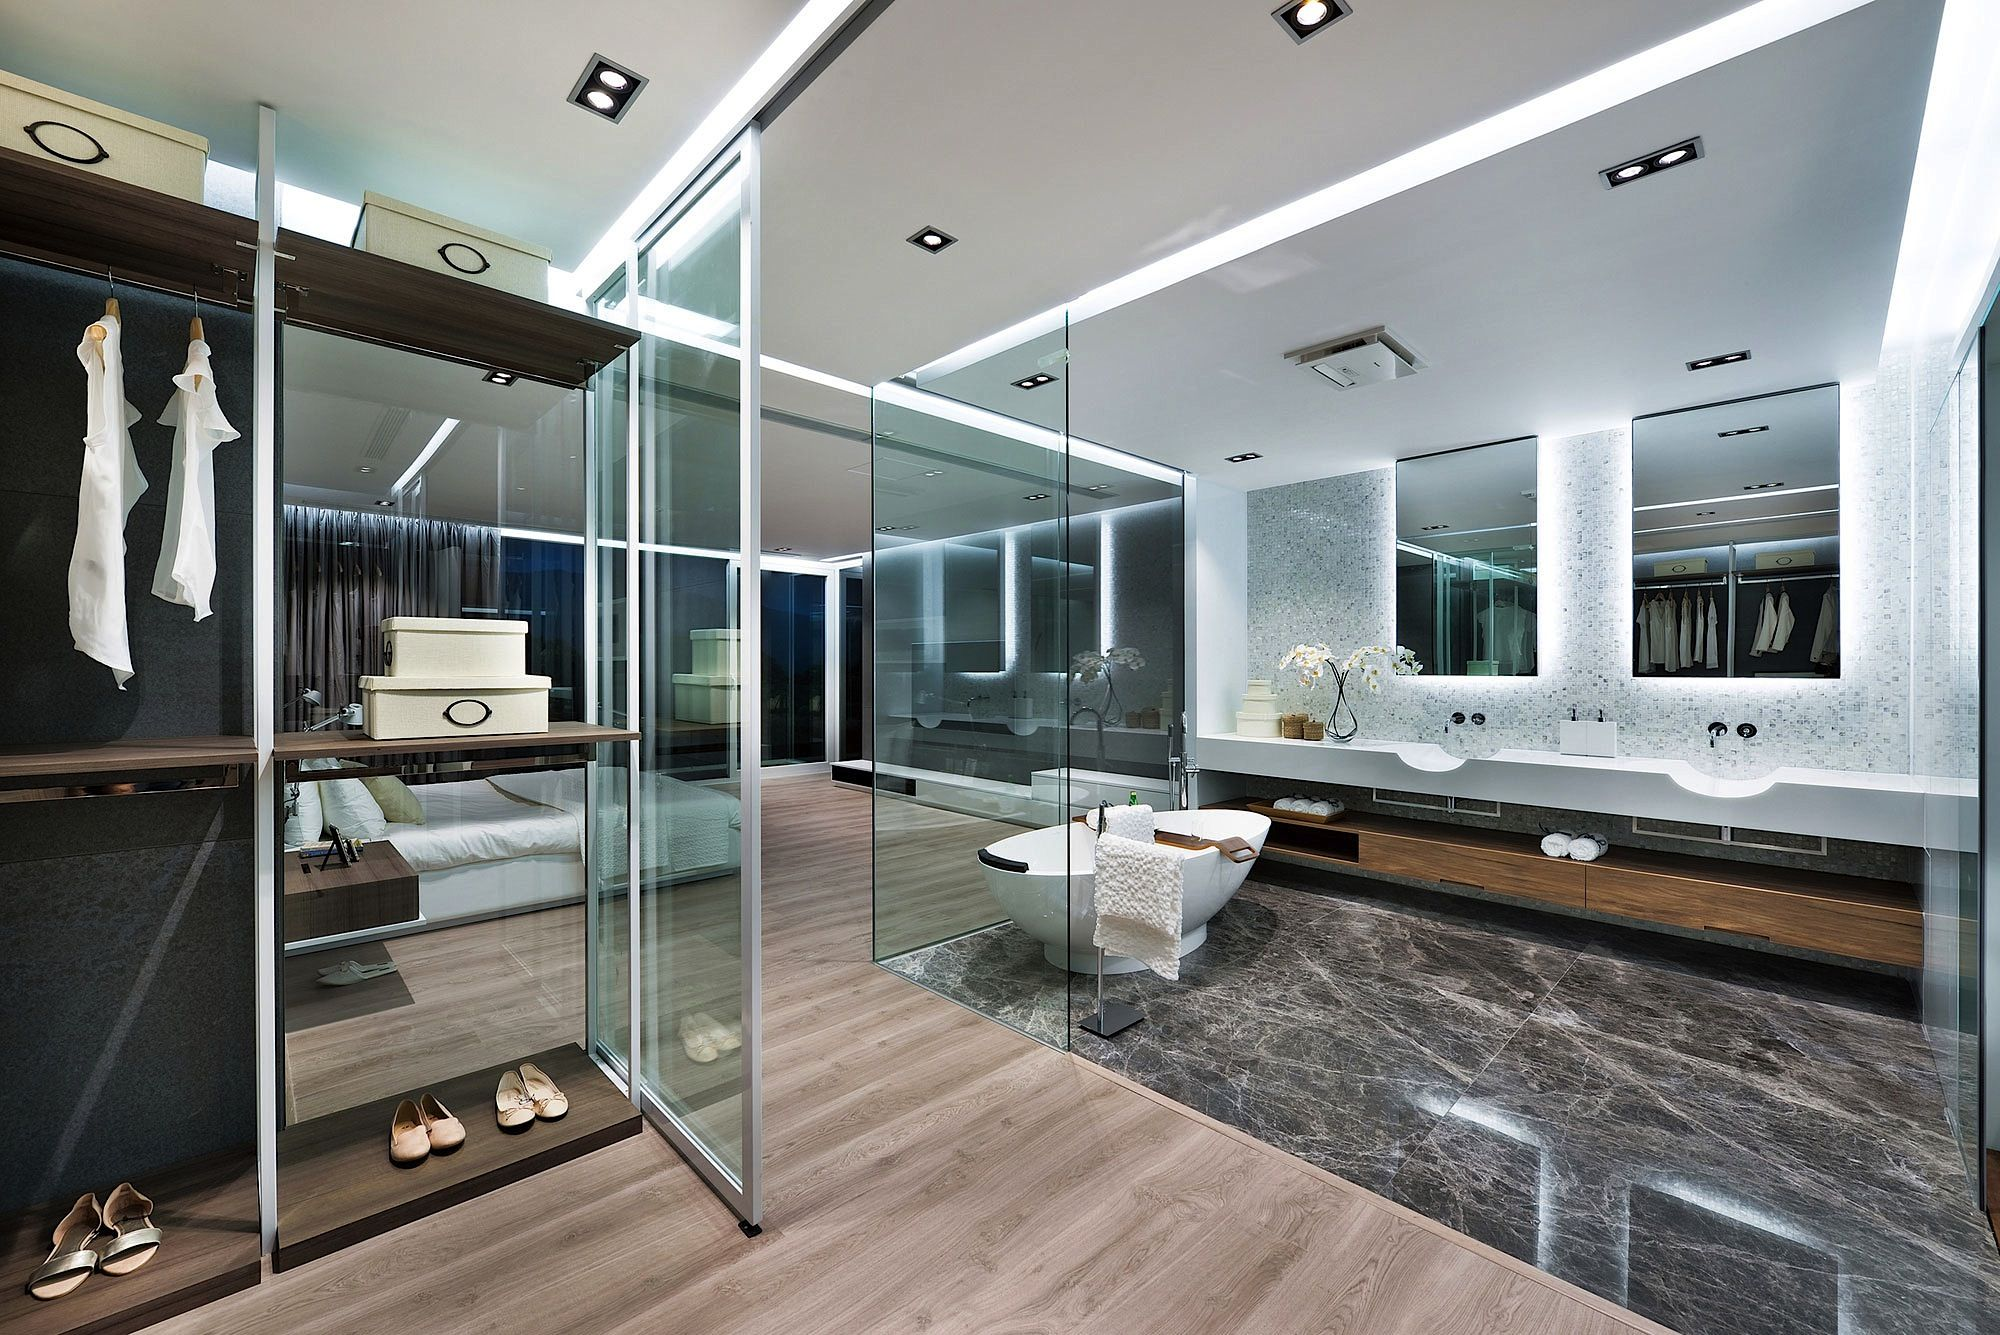 Dreaming On Master Bedroom Suite Wattached Bath Millimeter - Bedroom attached bathroom design